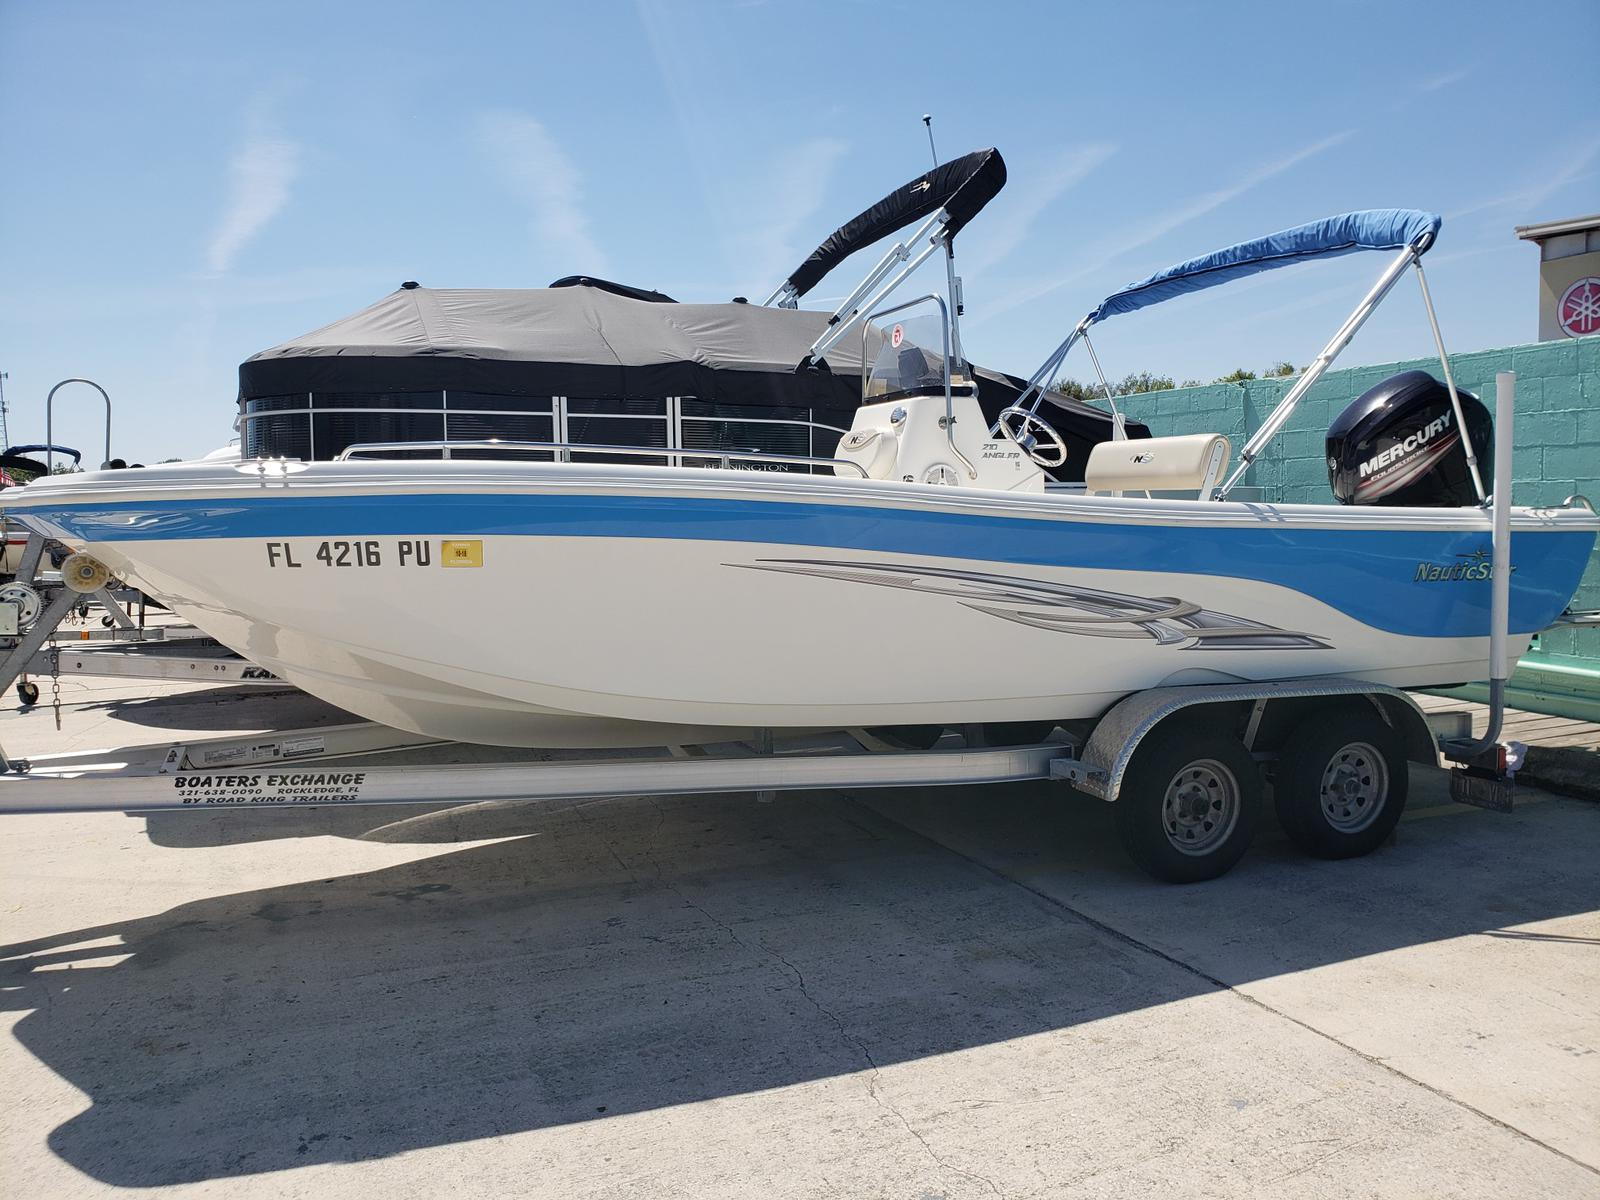 Inventory from Yamaha and NauticStar Boaters Exchange